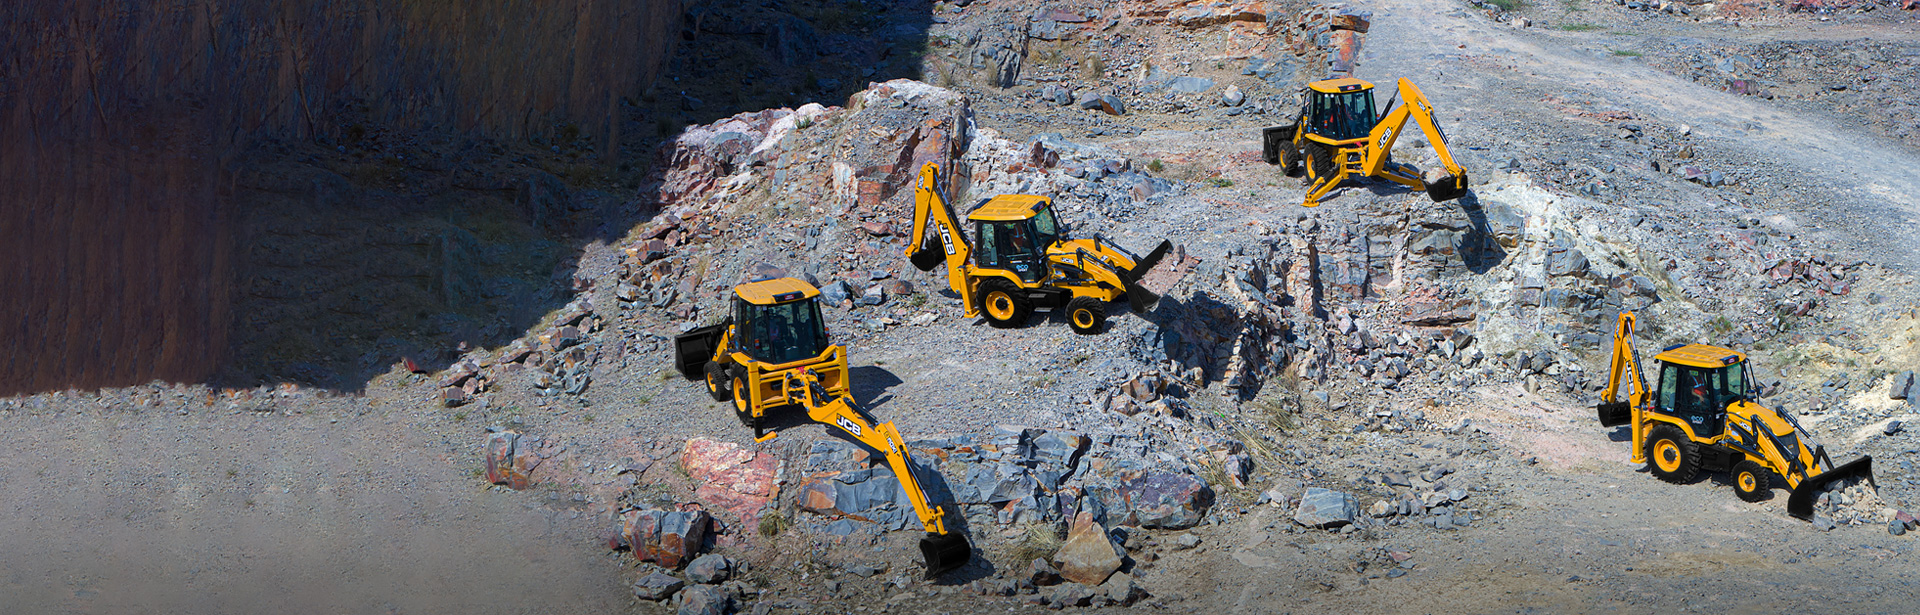 JCB Backhoe Loaders Rohtak